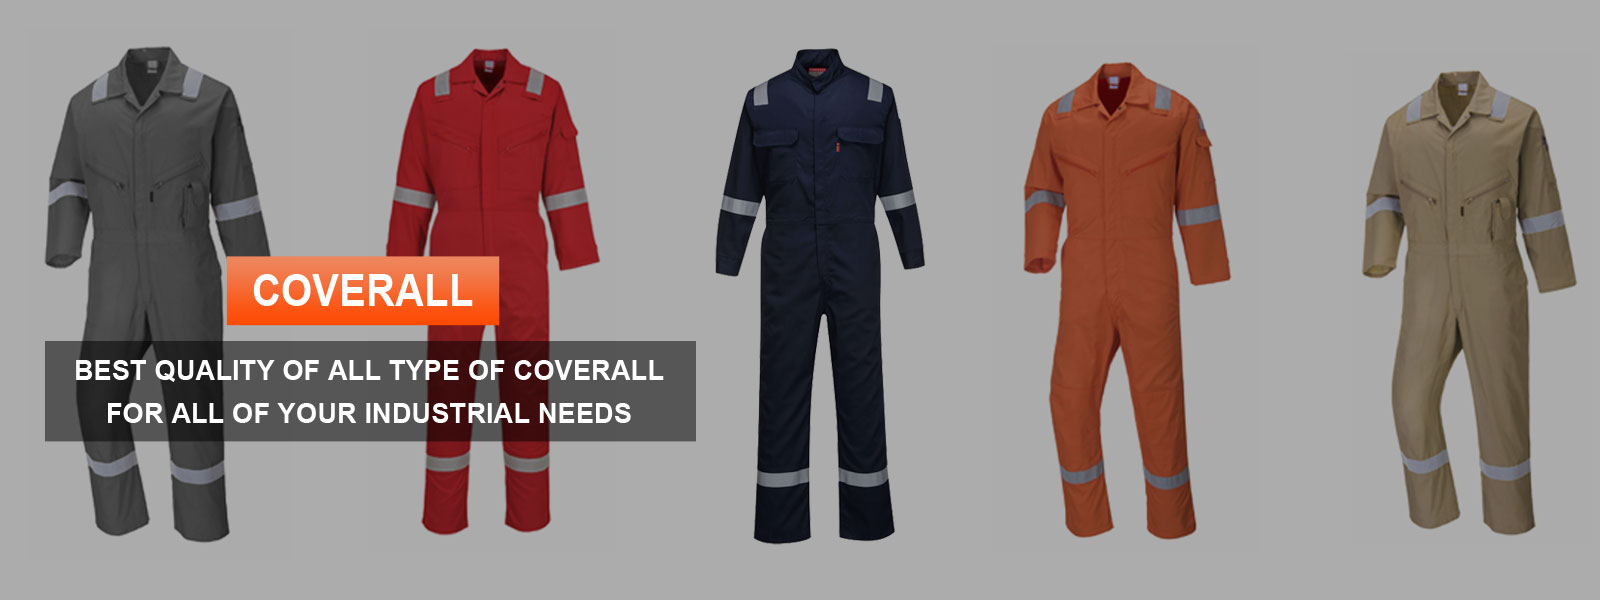 Coverall Manufacturers in Malawi